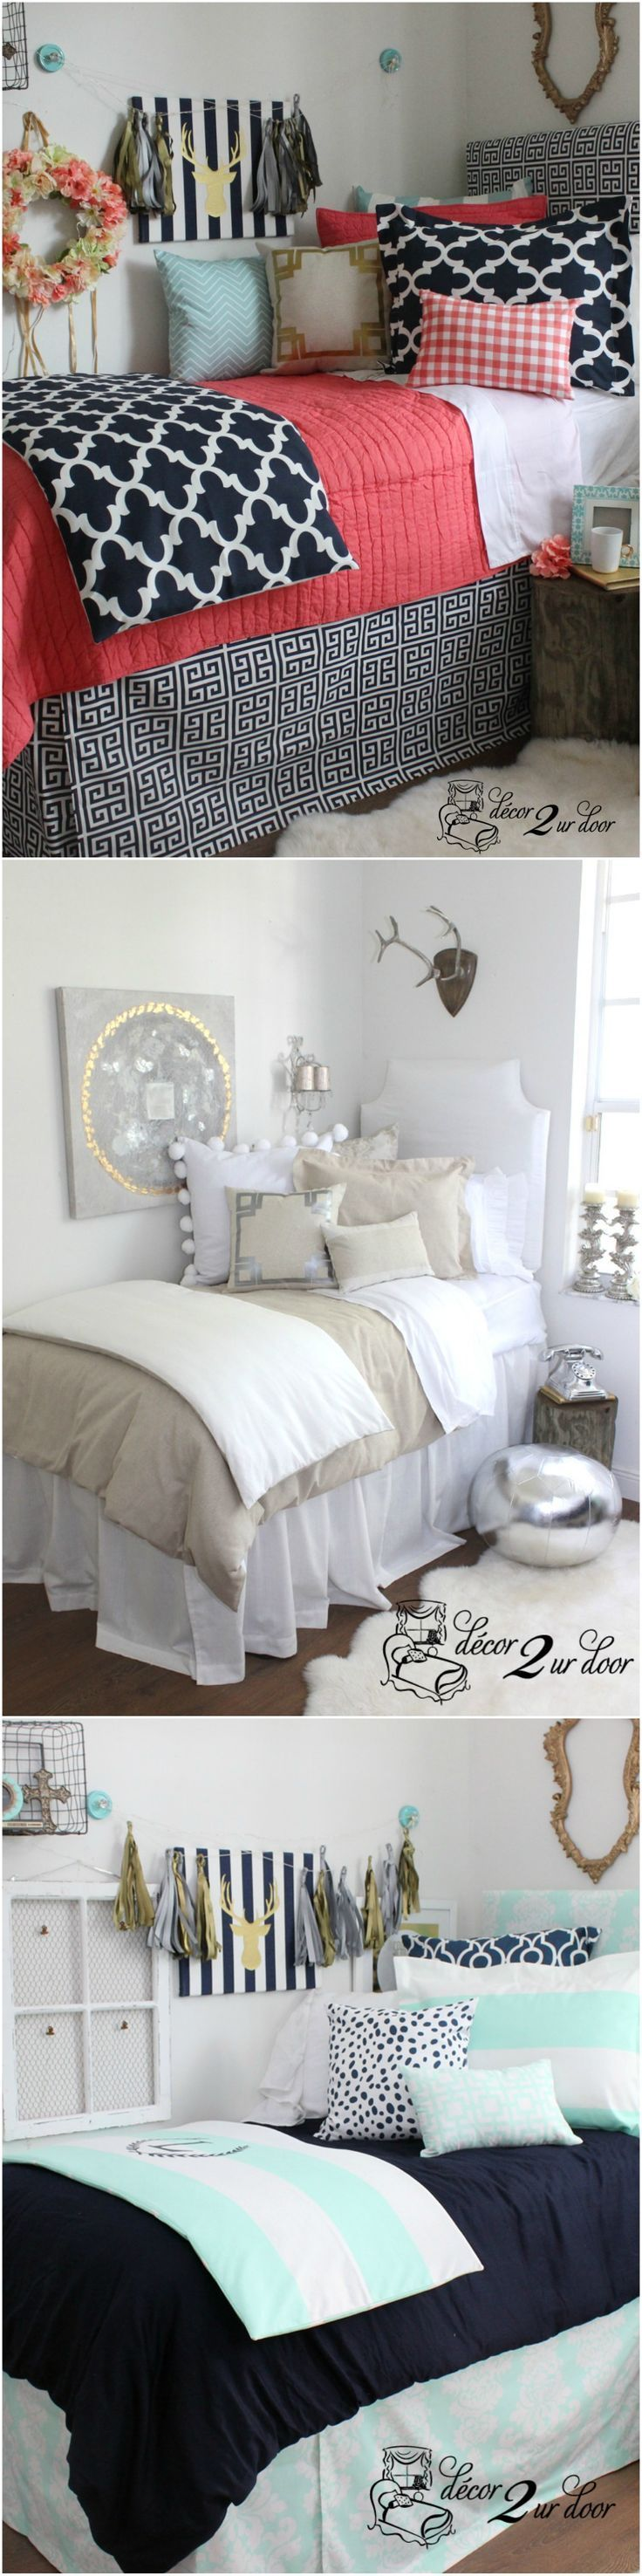 Decorating a dorm room? Check out Décor 2 Ur Door for the latest dorm room decorating trends. Top dorm room Dorm Room Décor. Custom-made Designer Dorm Room Bedding. Design your own dorm room bedding. Designer dorm headboard, dorm bed scarf, dorm bed skirt/dorm dust ruffle, monogram dorm room pillows, dorm room window treatment, lofted dorm bed décor, dorm room wall monogram, chair cover for dorm room, modern dorm room furniture and so much more!